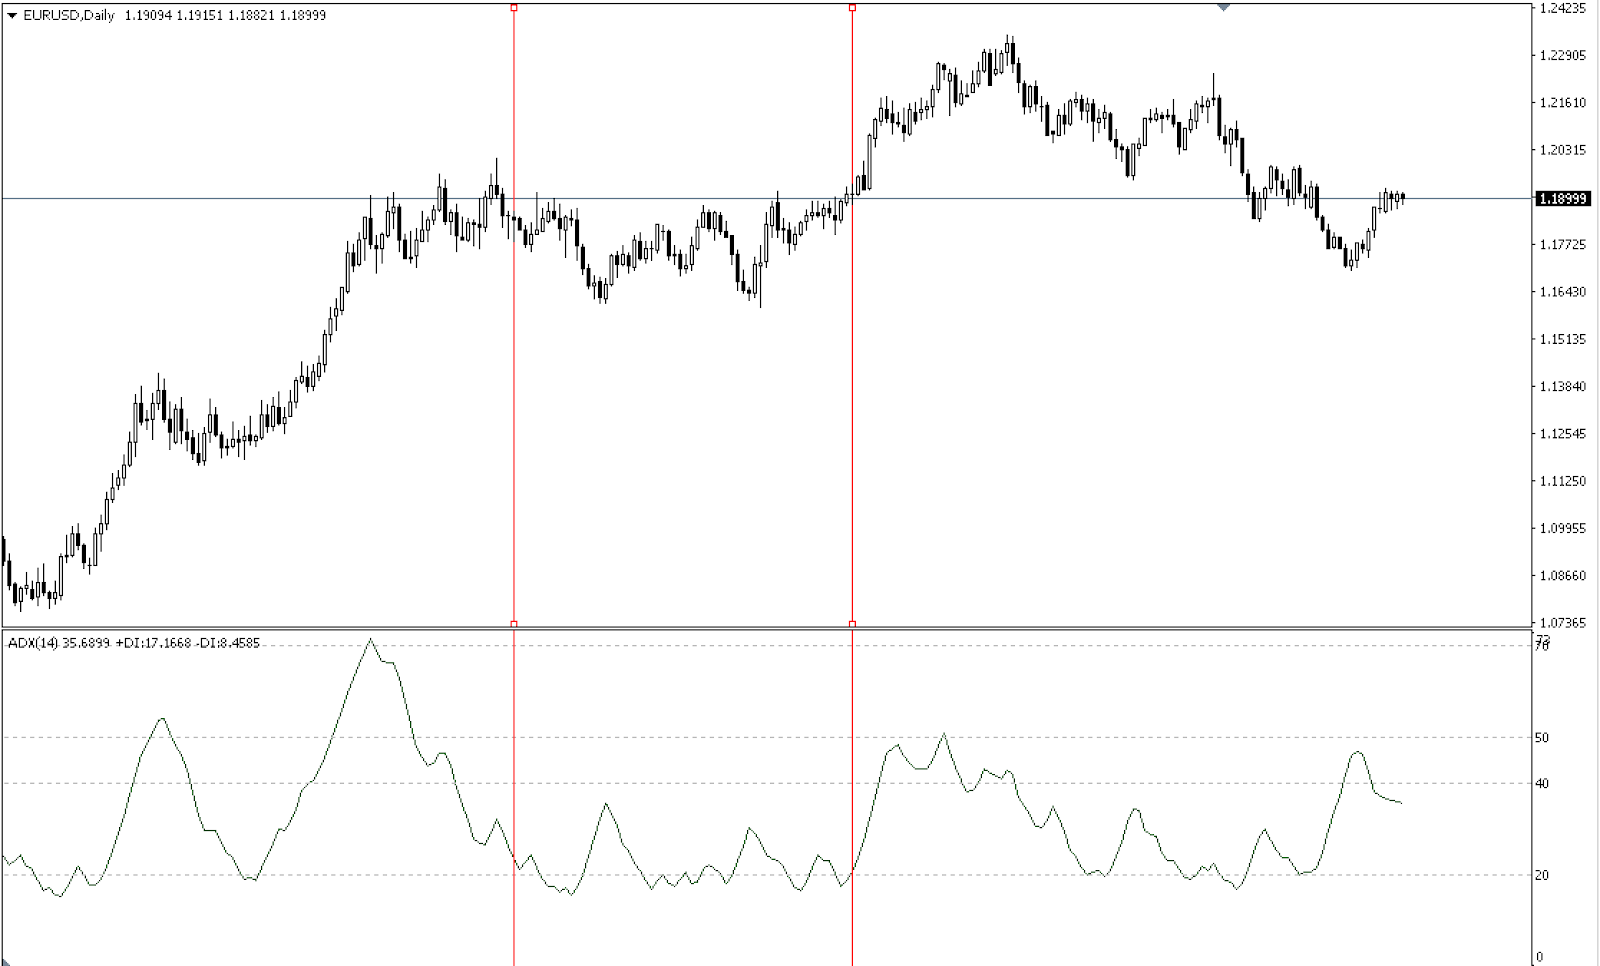 Chart that shows ADX indicator